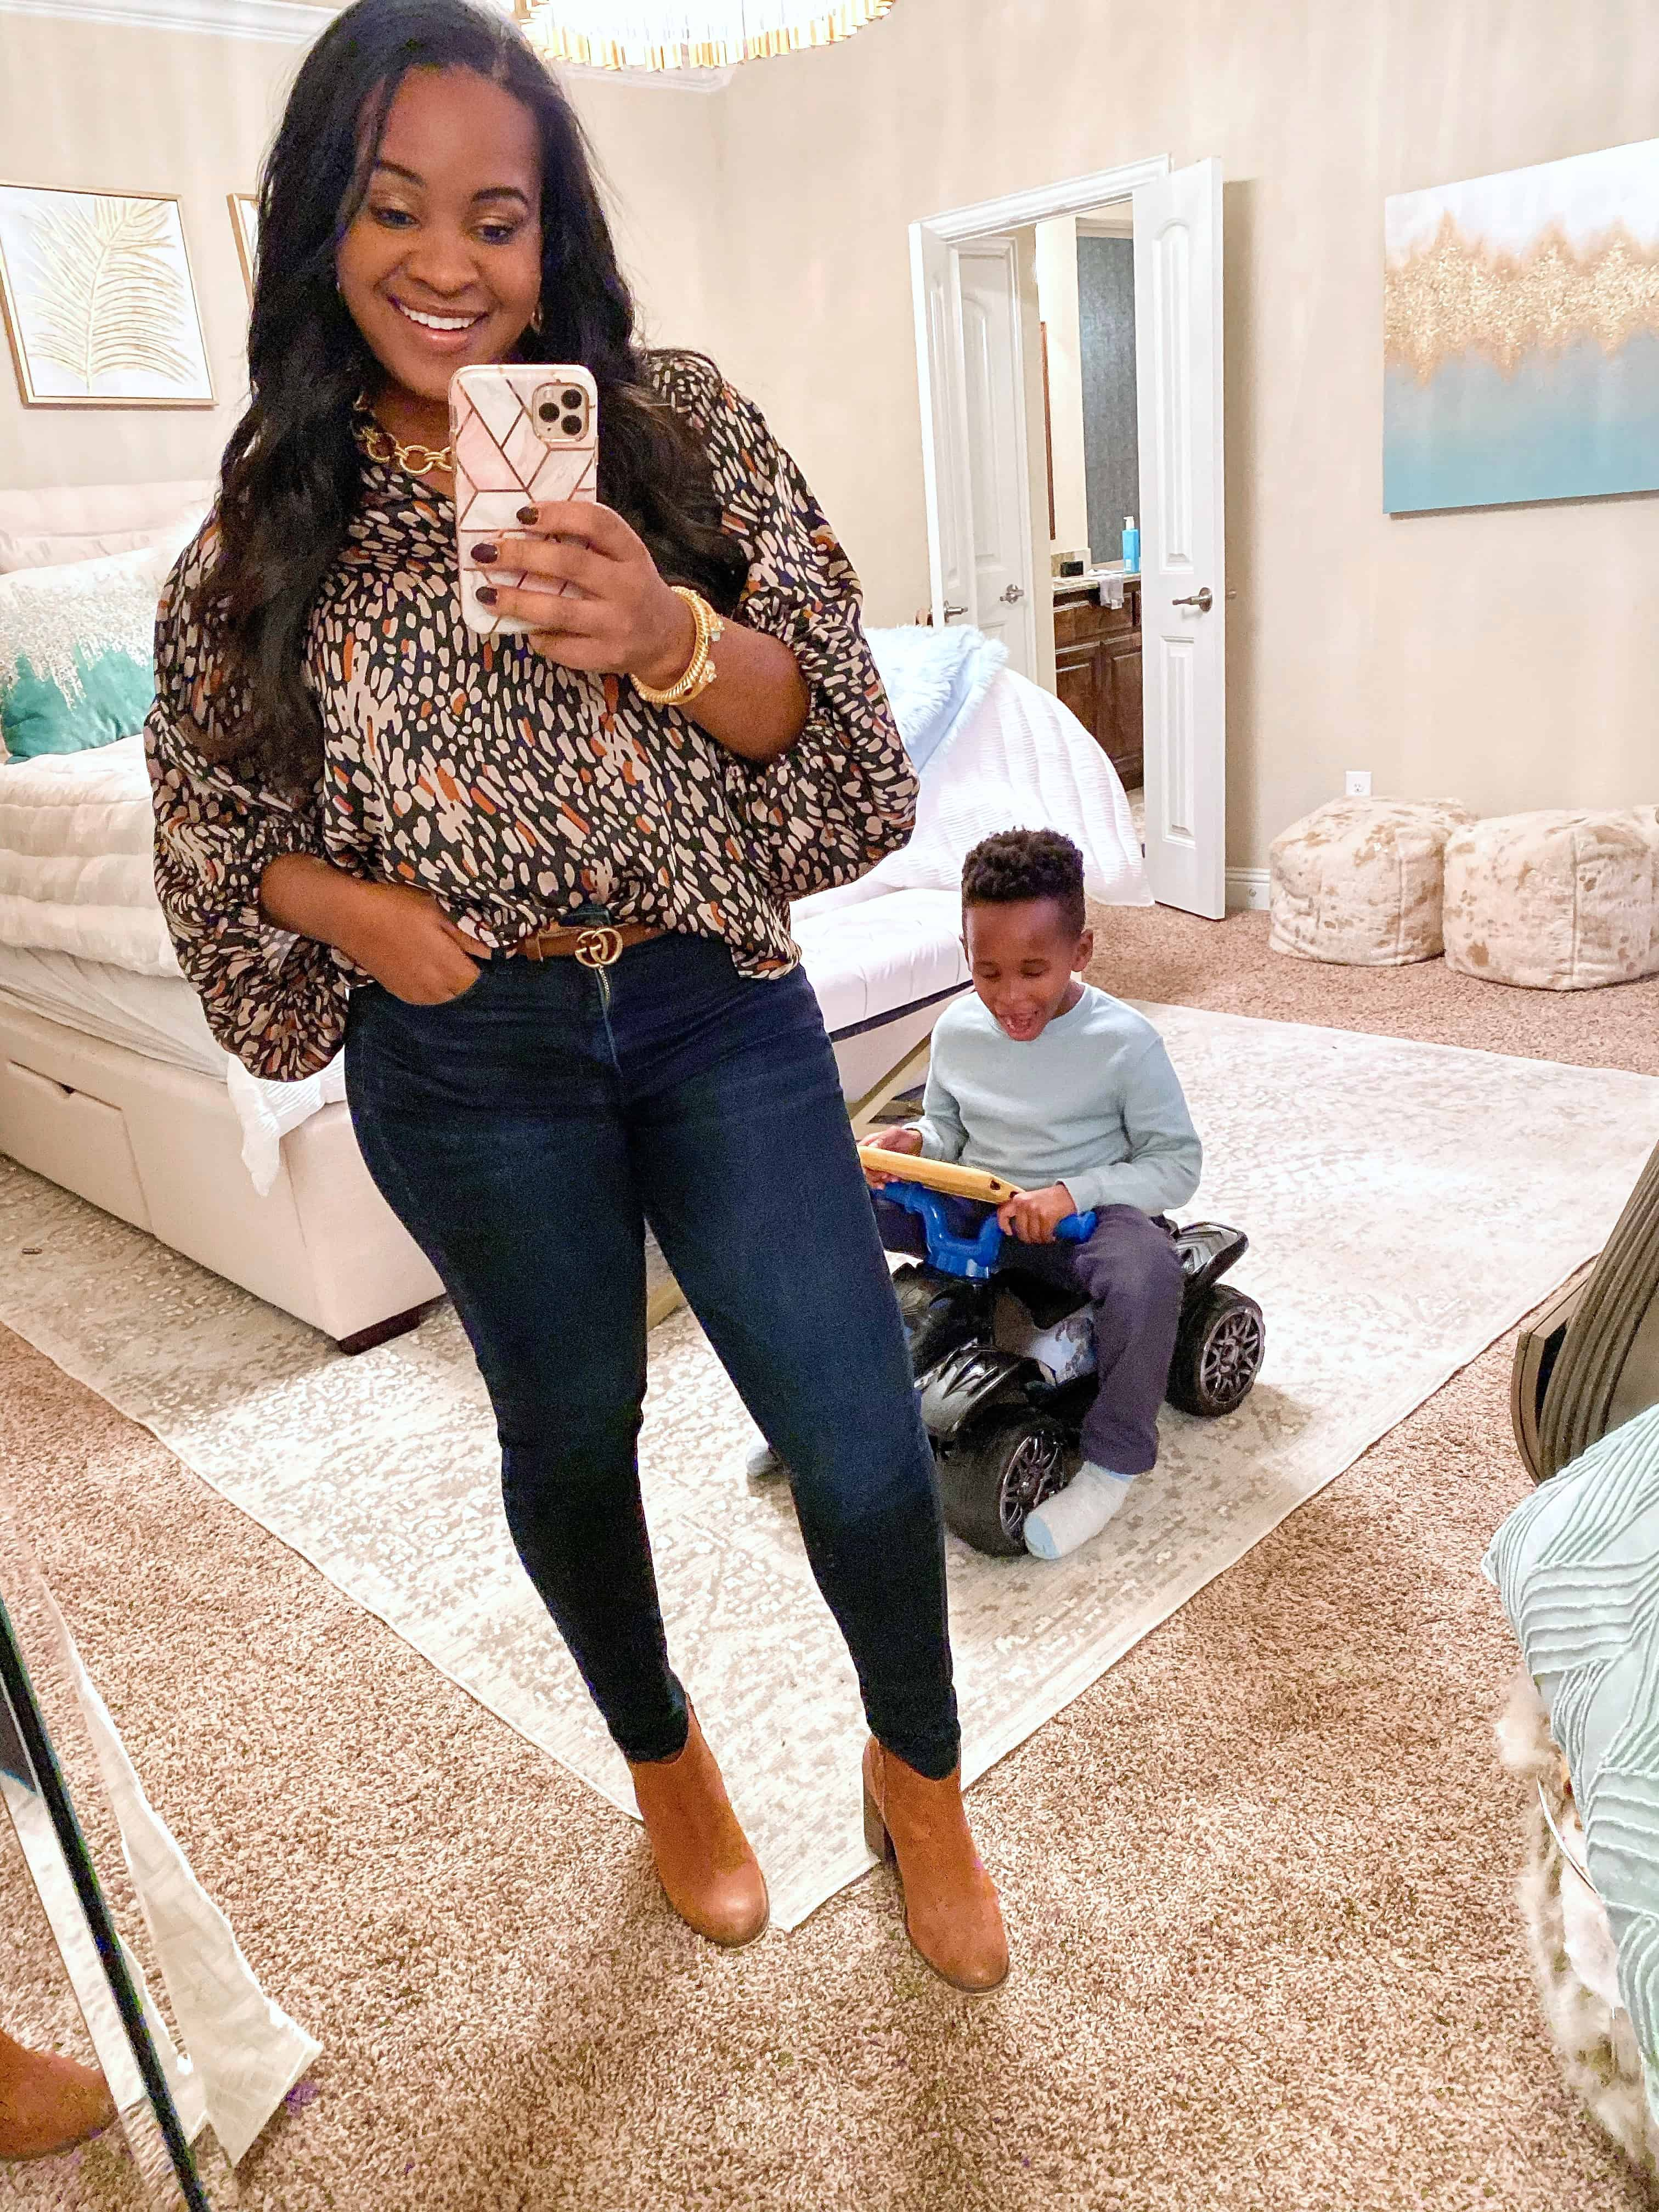 4 Cute Thanksgiving Outfit Ideas featured by top US fashion blog, Glamorous Versatility: image of a woman wearing a patterned blouse, skinny jeans and ankle booties